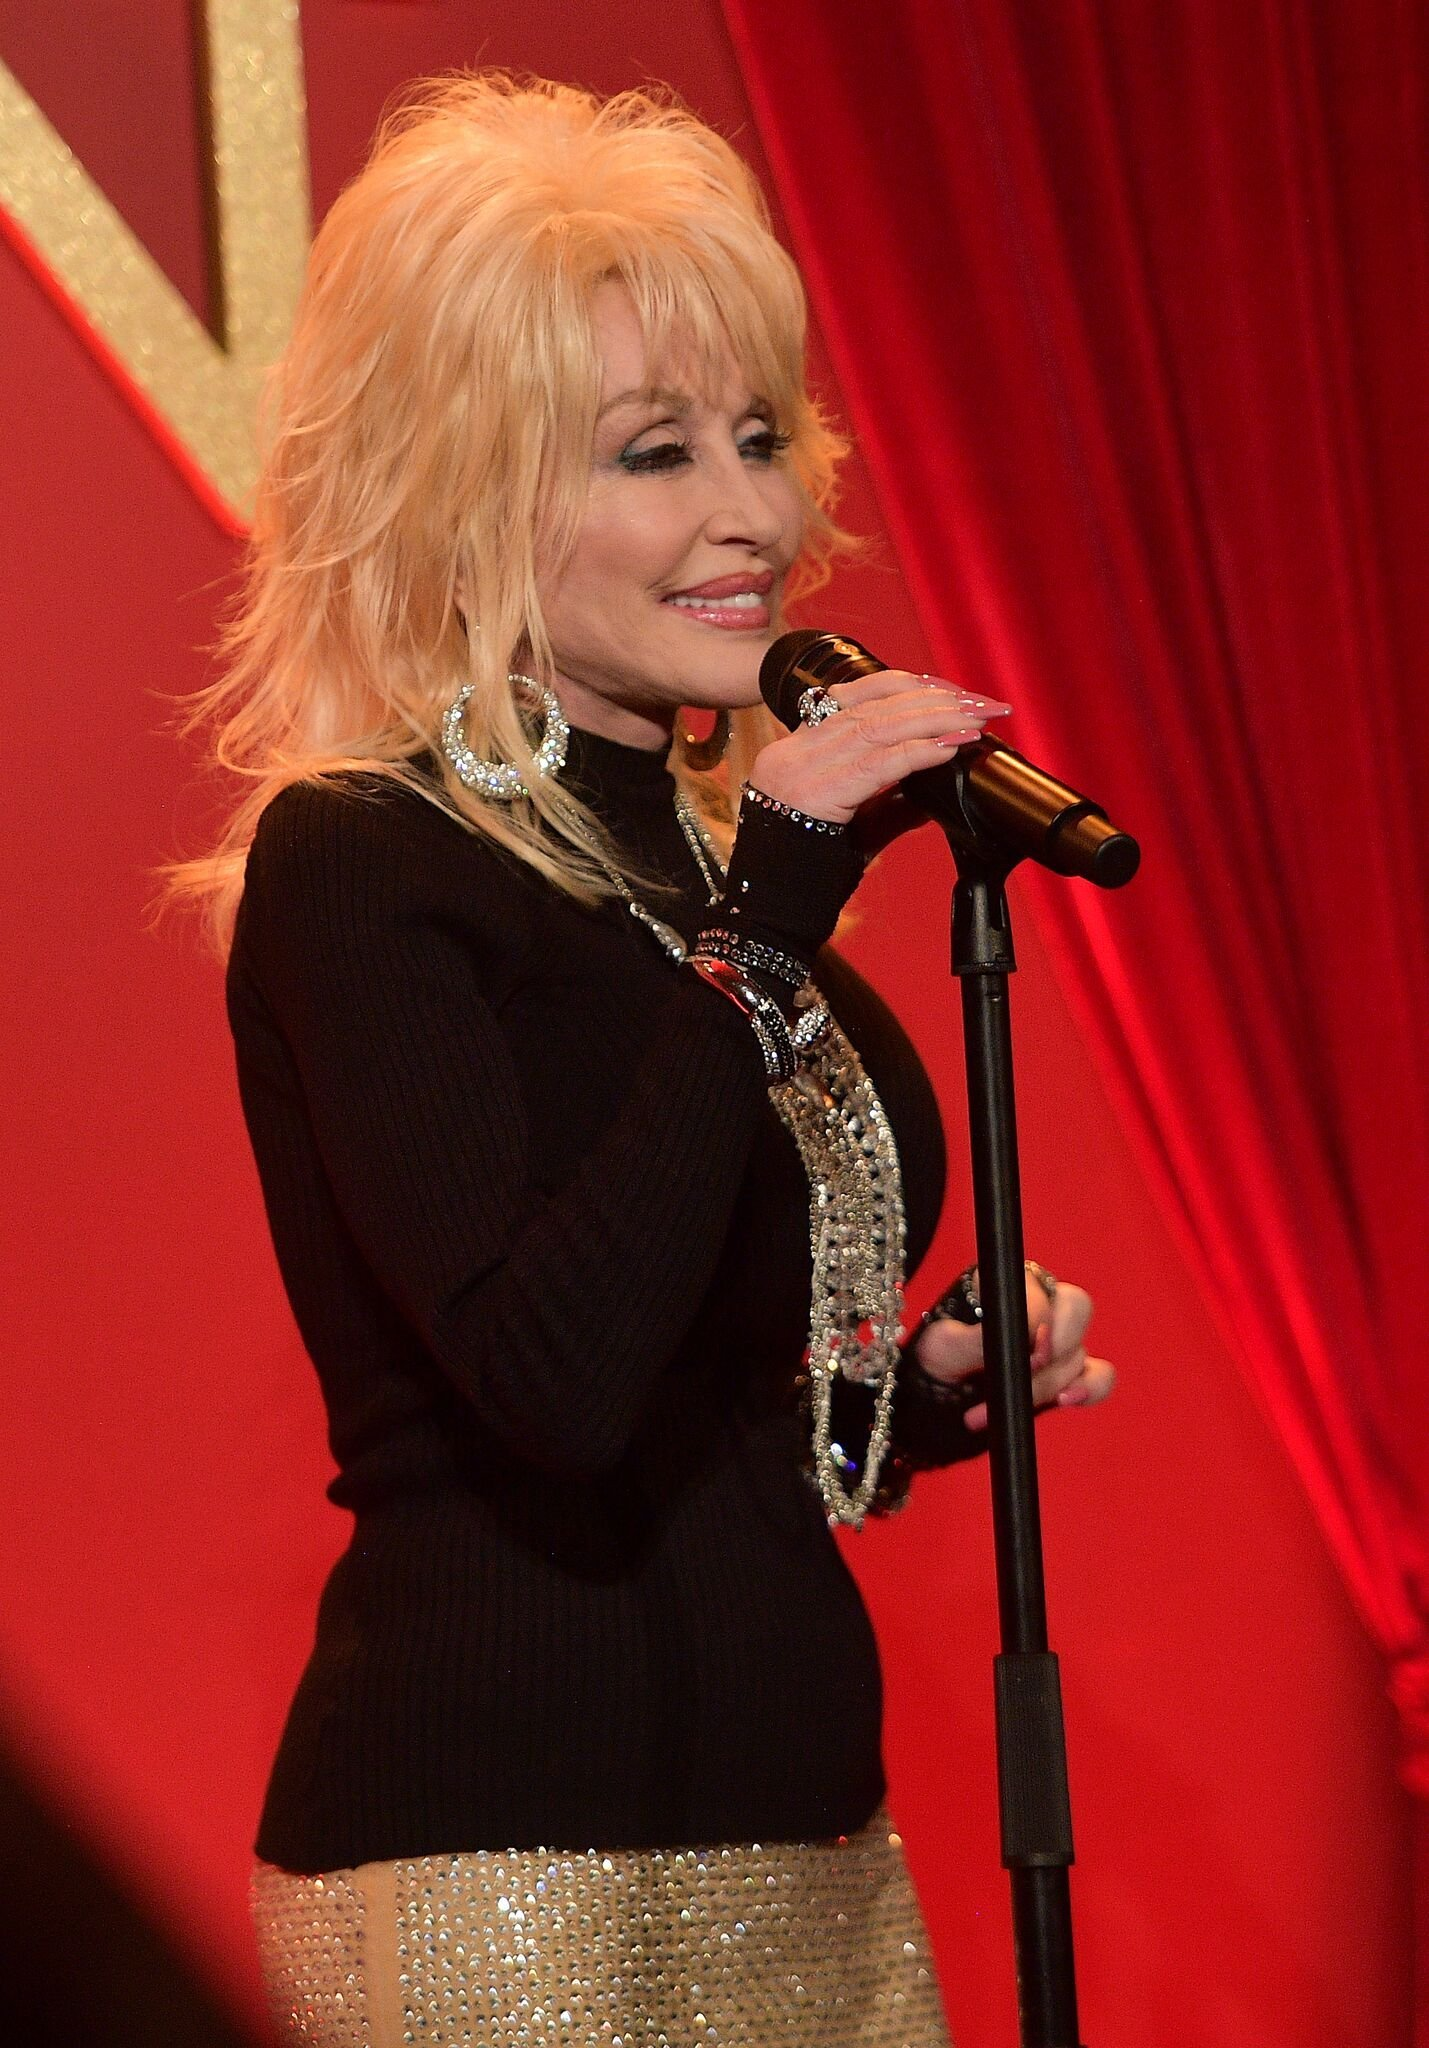 Dolly Parton performs onstage at a luncheon for the Netflix Film Dumplin' at Four Seasons Hotel Los Angeles | Getty Images